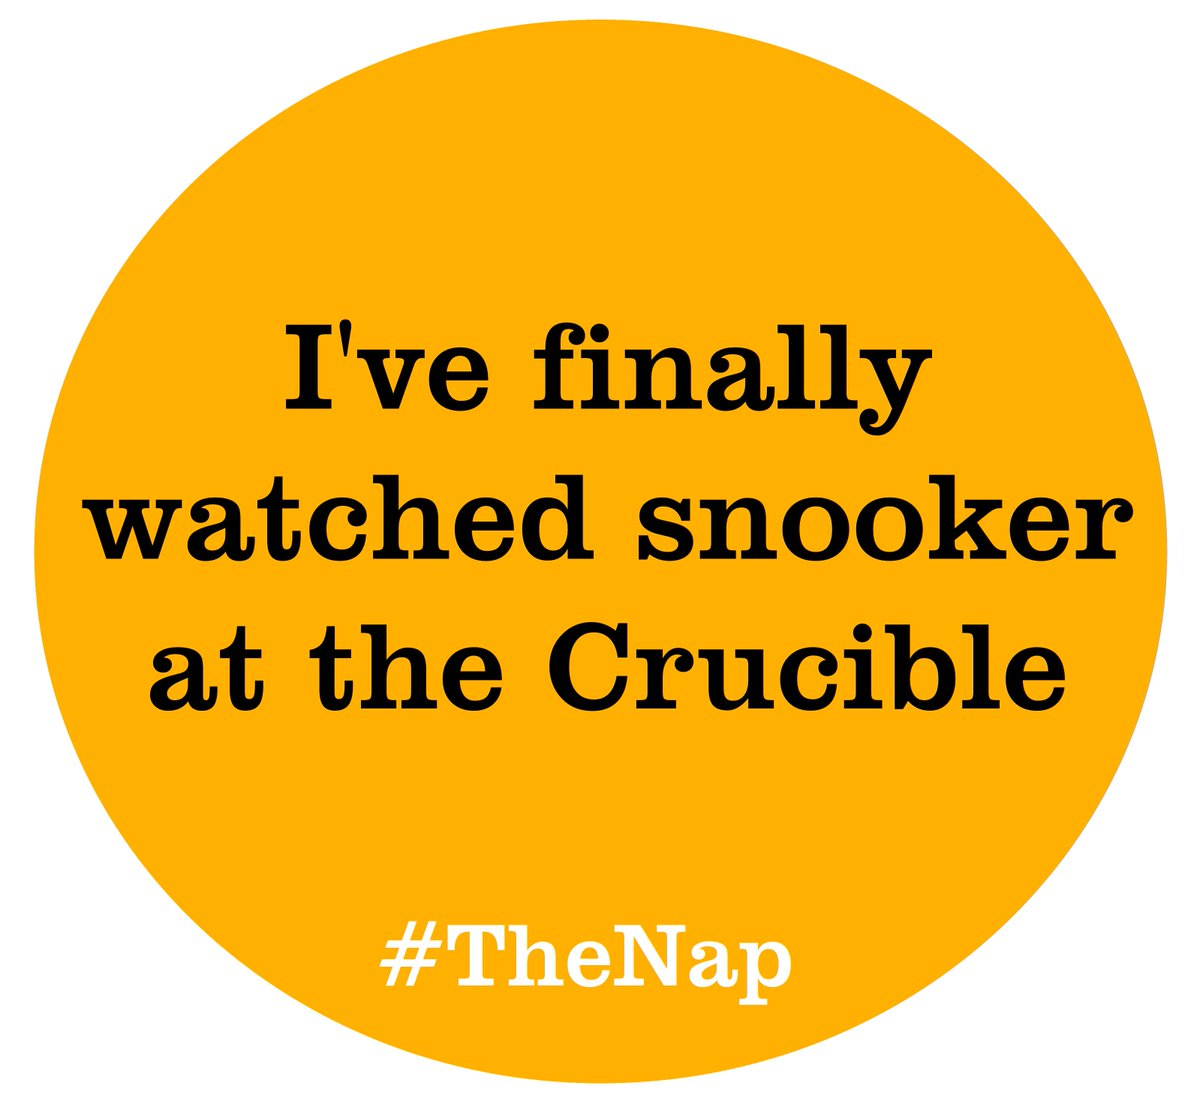 Been to see #TheNap? Retweet this if it's the first time you've watched live snooker! https://t.co/XbfNKCL9R1